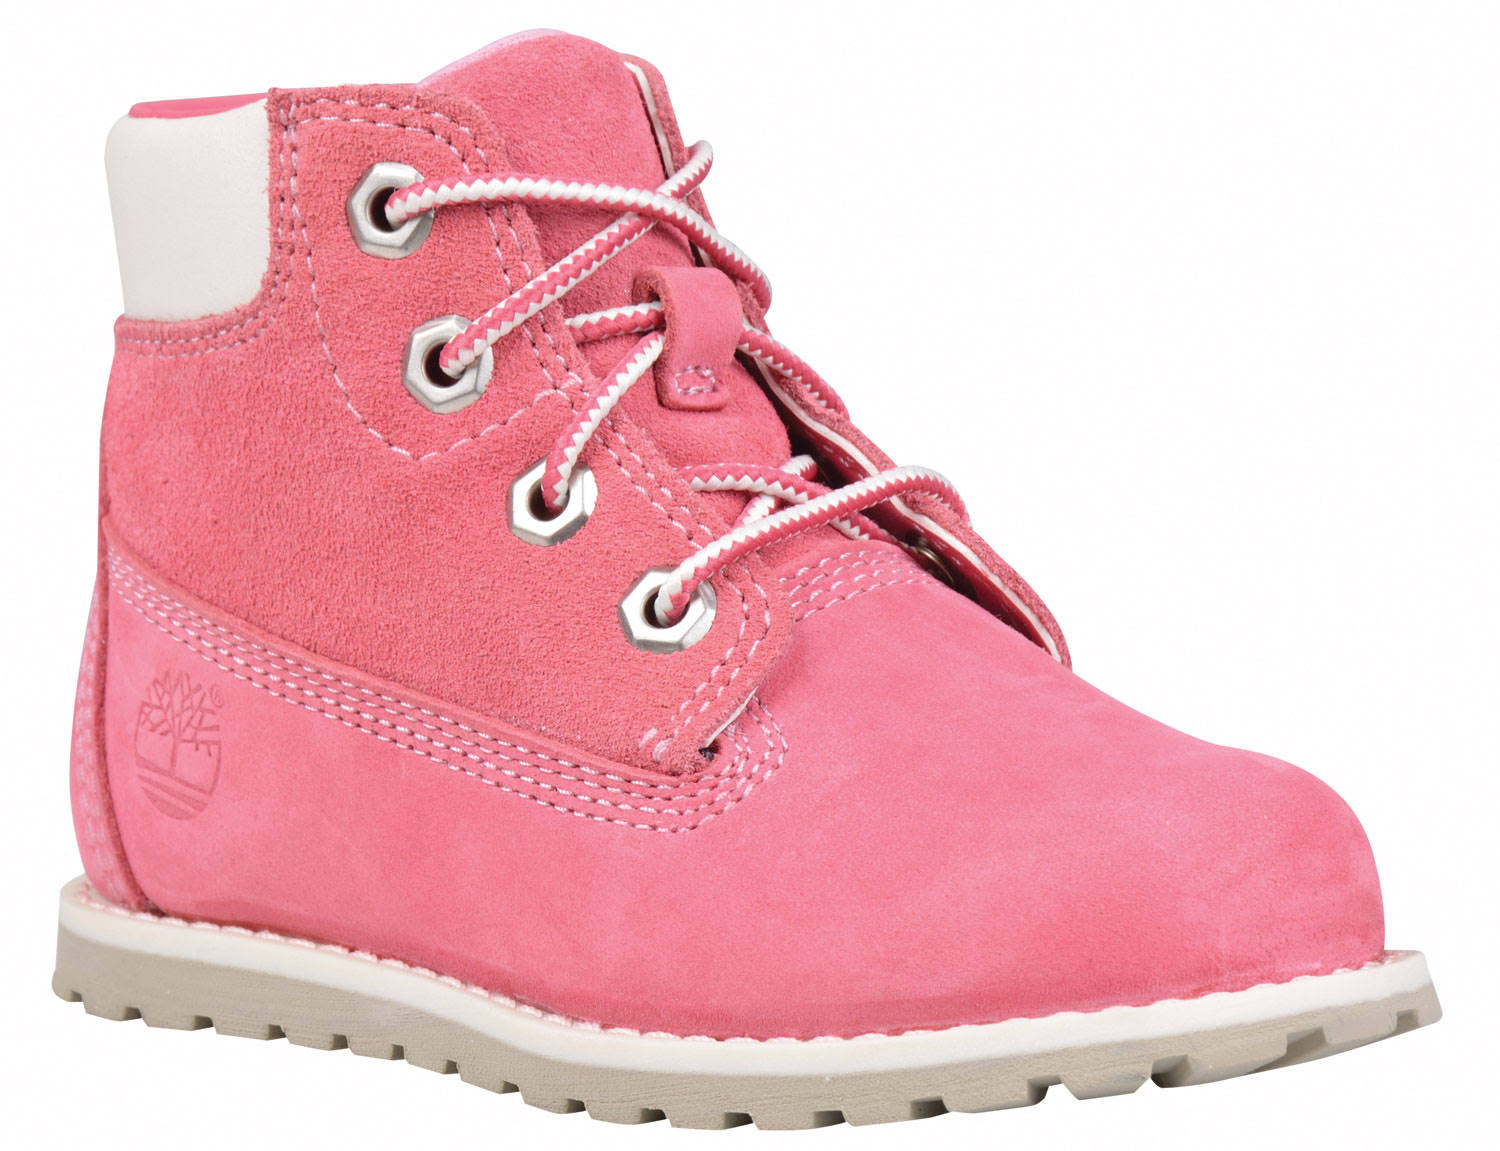 Side In Pink Toddlers 6 Pine Zip With 25 Boot 1 2 Pokey Eu Timberland tqY6TwnFt